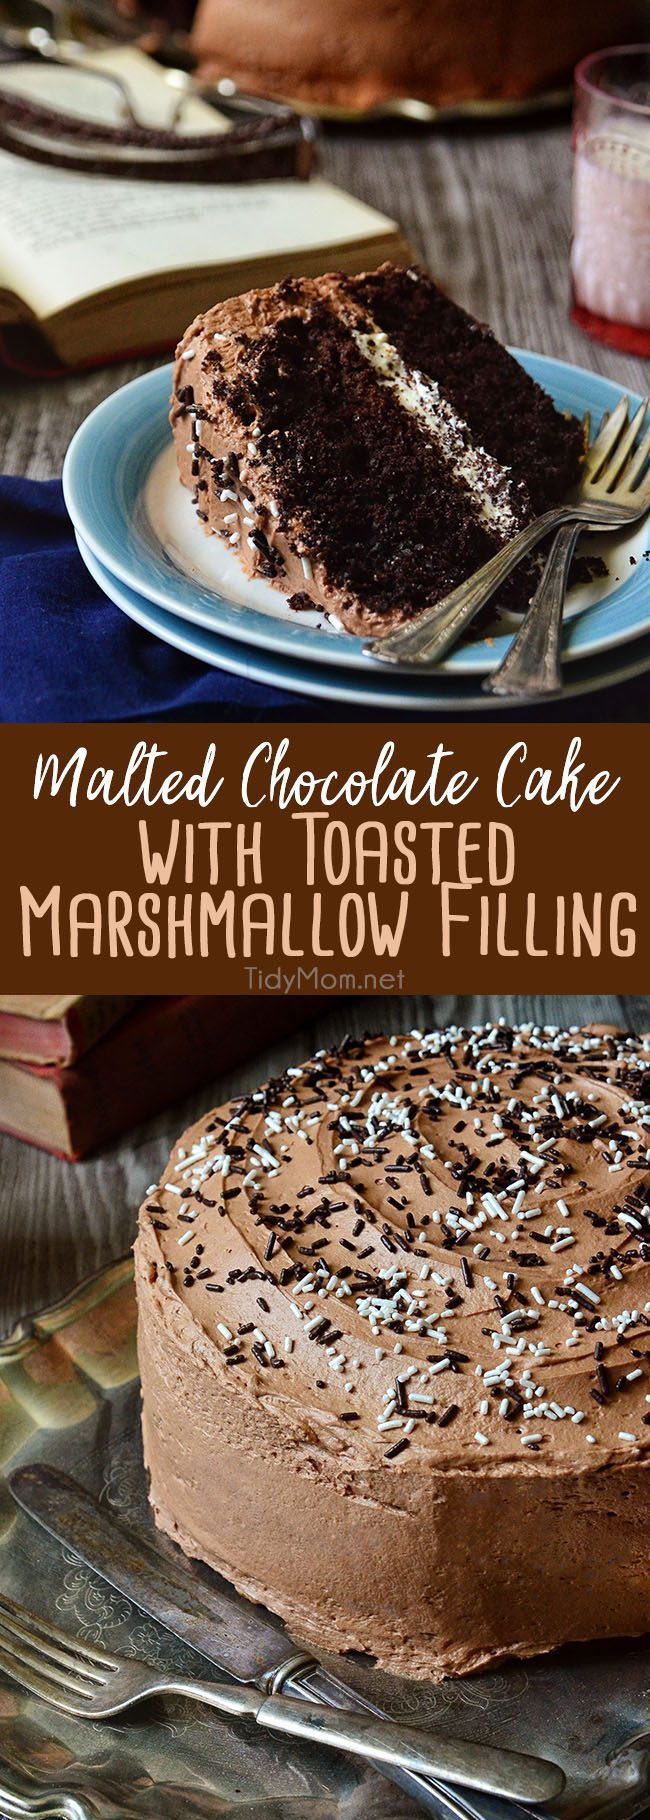 If you only have the chance once in your life to eat chocolate cake, let it be this Malted Chocolate Cake with Toasted Marshmallow Filling.  You'll die happy and complete, I promise. Get the full printable recipe at TidyMom.net